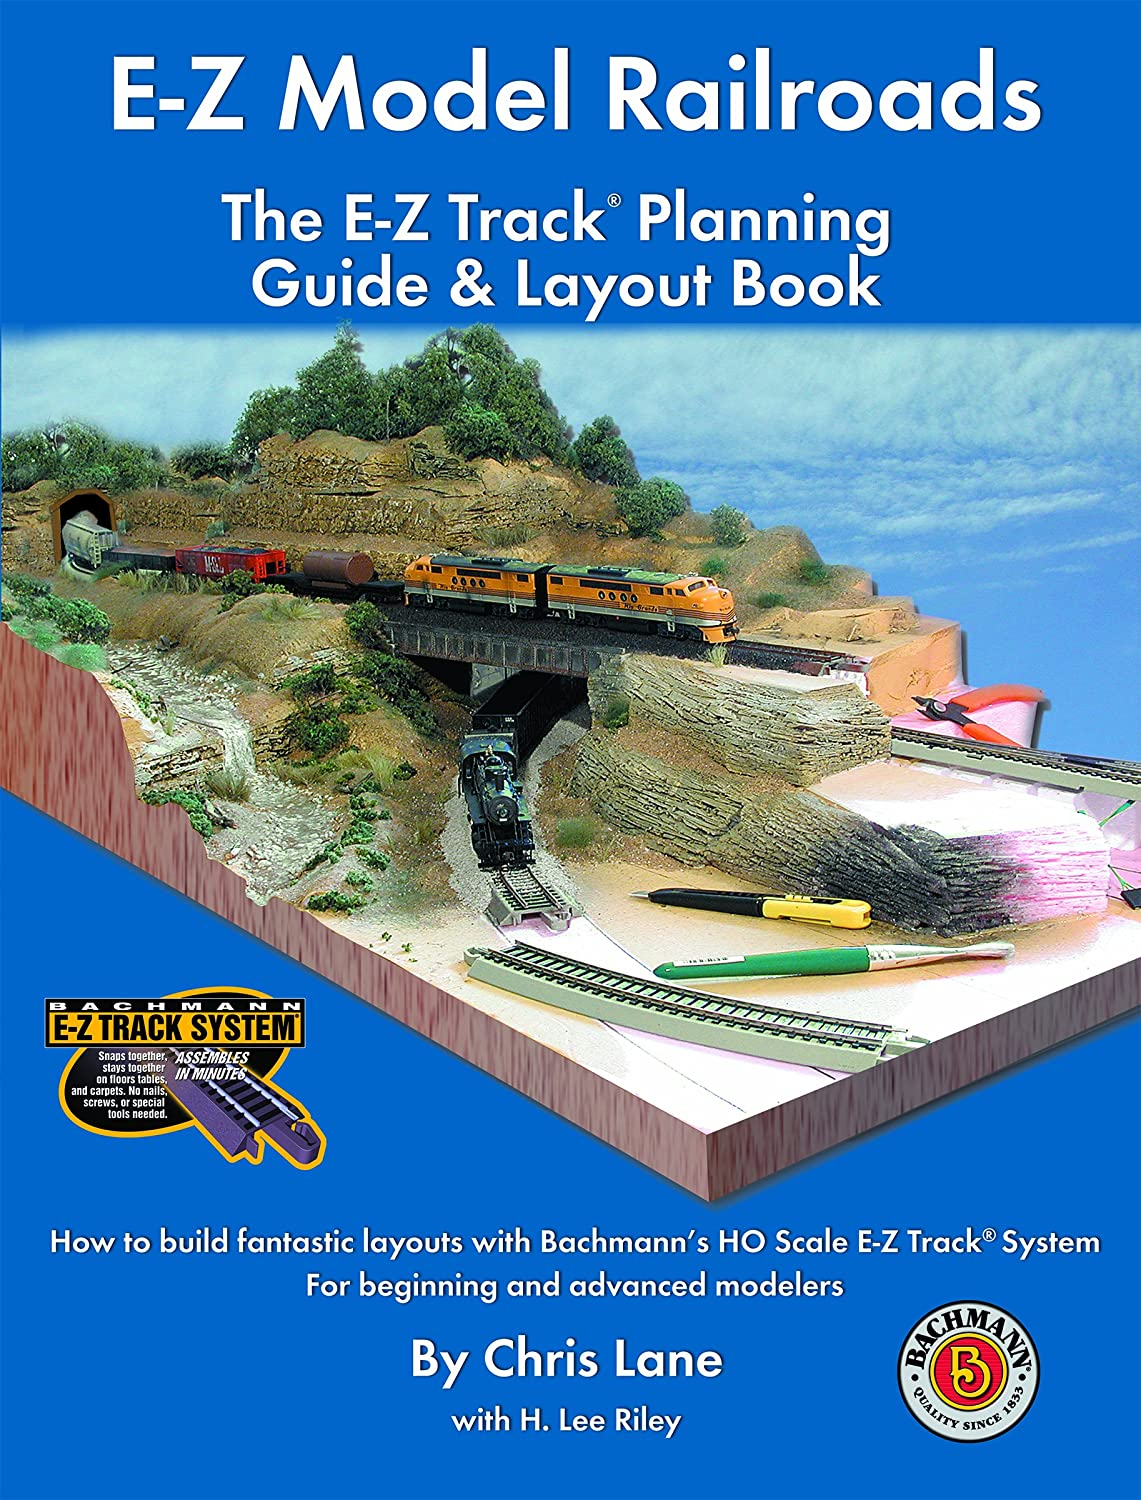 E Z Model Railroads The Track Planning Guide Double Wiring Dcc Layout Book Chris Lane H Lee Riley Toys Games